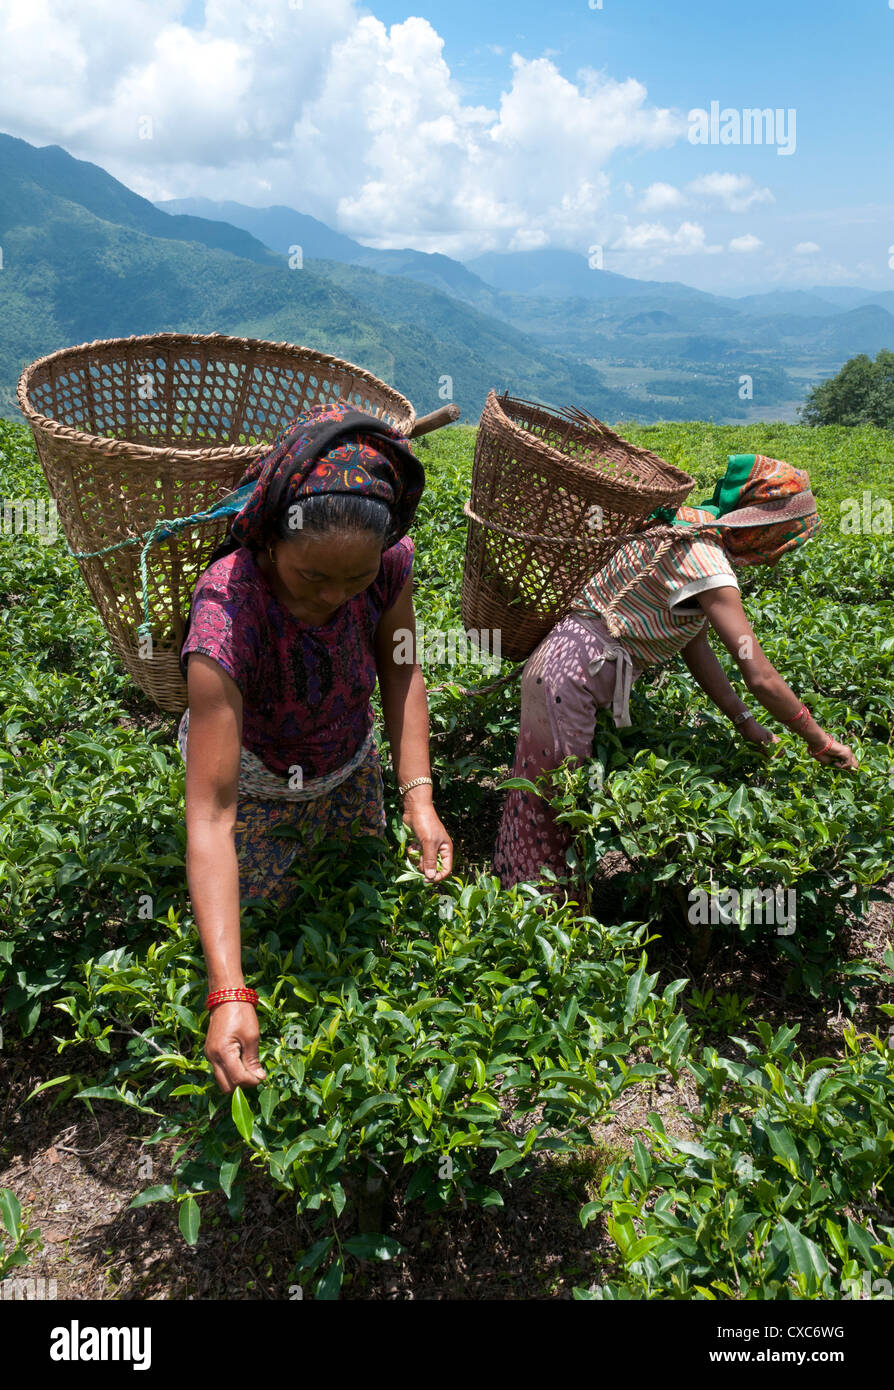 Tea plucking in the Annapurna area, Lwang. Pokhara, Nepal, Asia - Stock Image